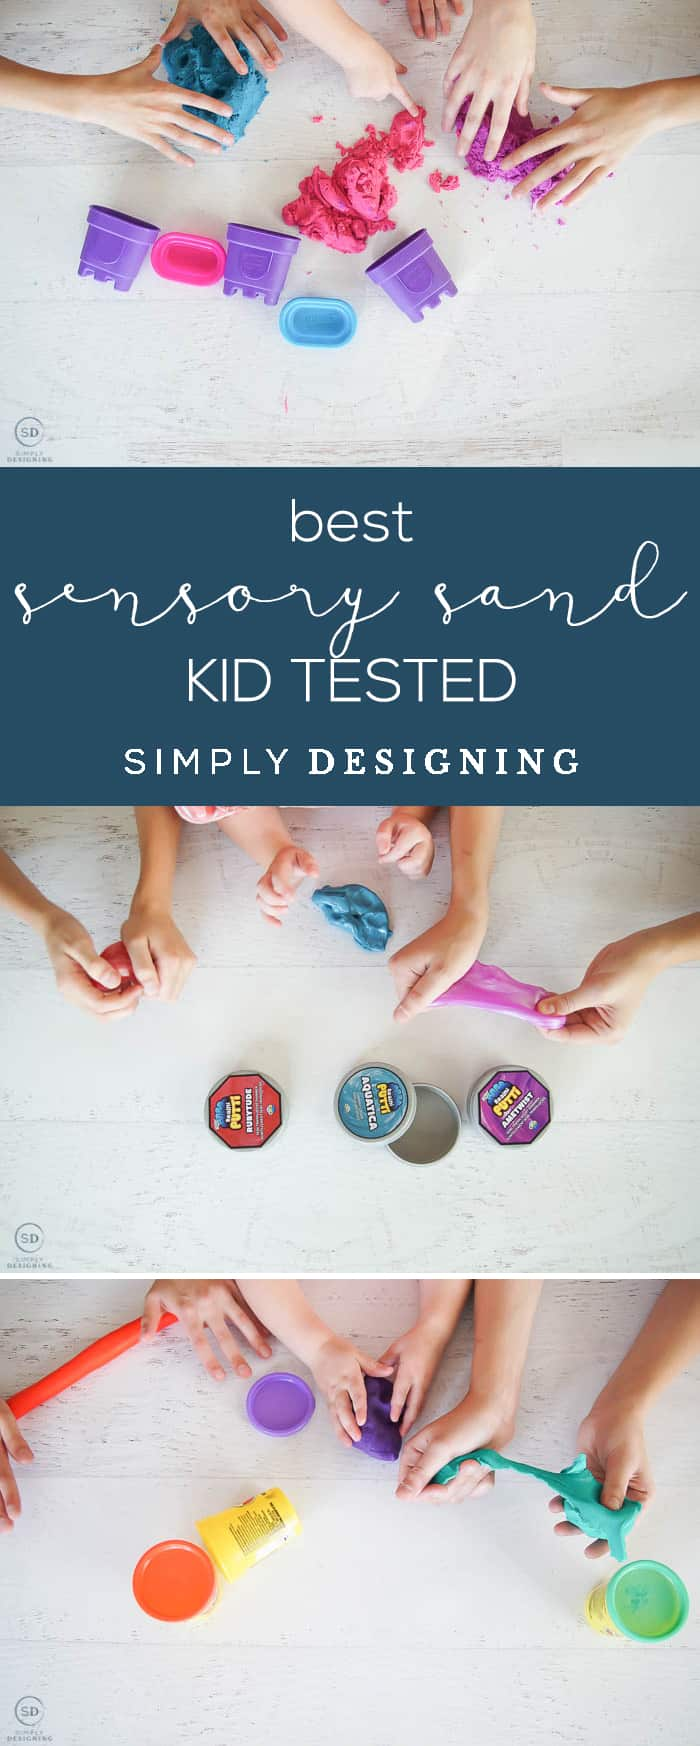 The BEST Sensory Sand - Kid Tested - kinetic sand vs slime vs putti vs play doh - which is squishiest messiest and overall best